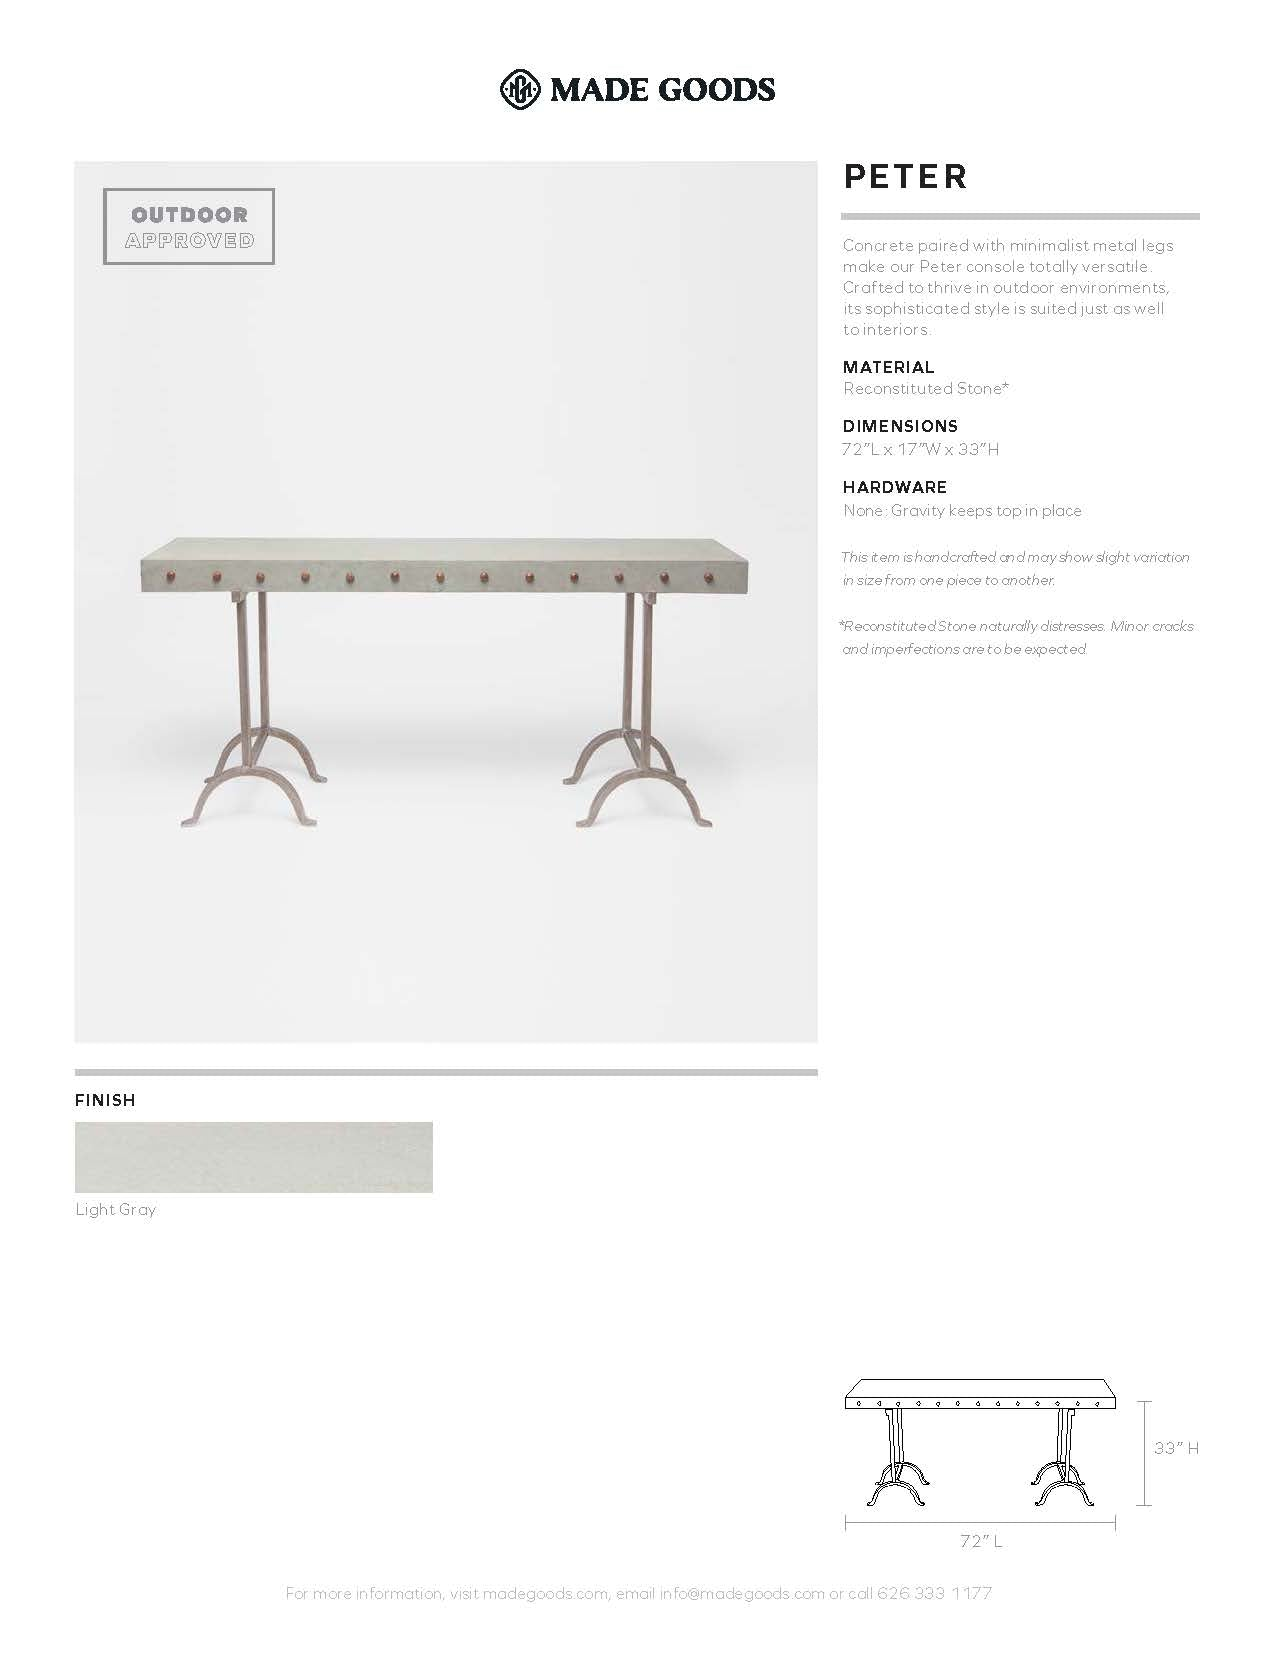 made goods peter console tearsheet